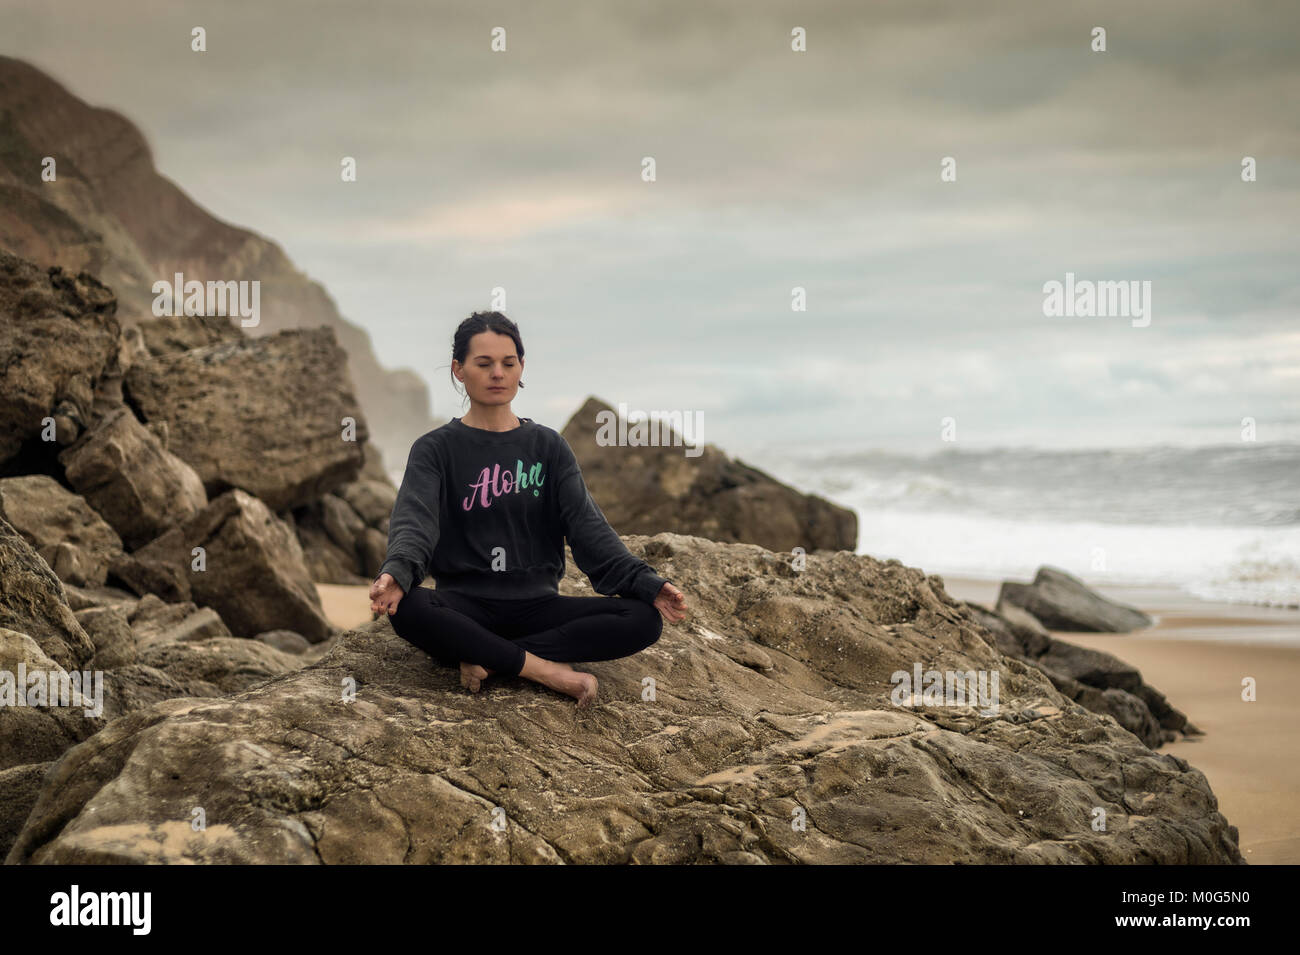 woman doing yoga sitting on a rock by the sea, lotus position. - Stock Image